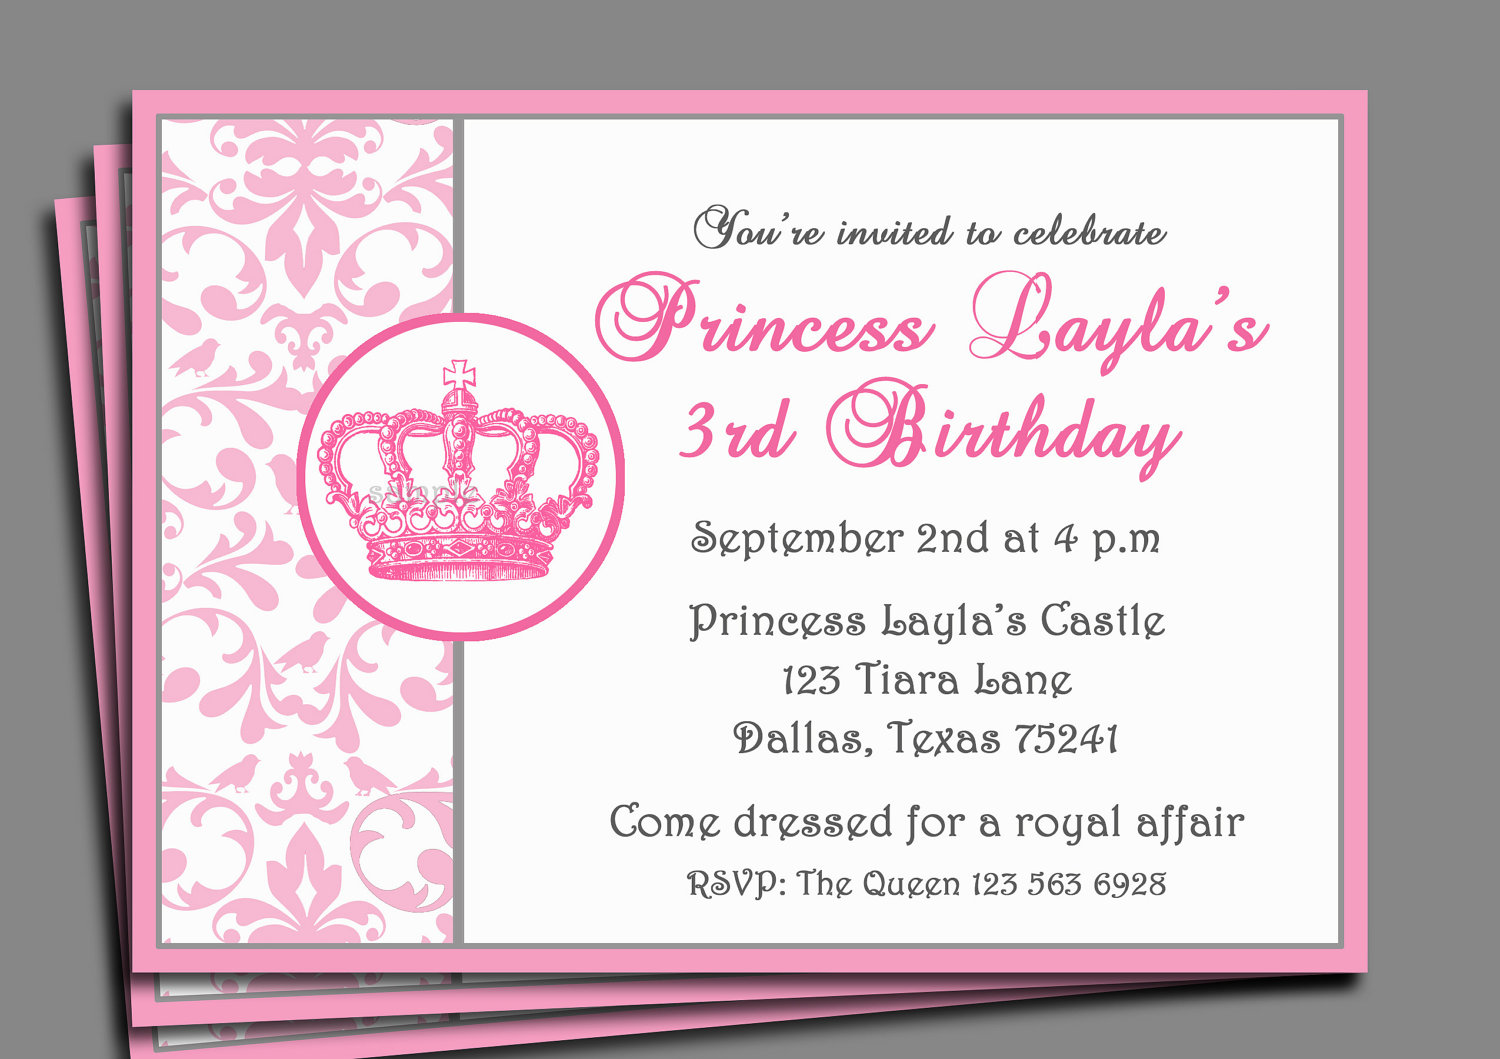 invitations page of mickey mouse invitations templates printable princess birthday invitations templates middot princess party invitations middot princess birthday party invitation wording